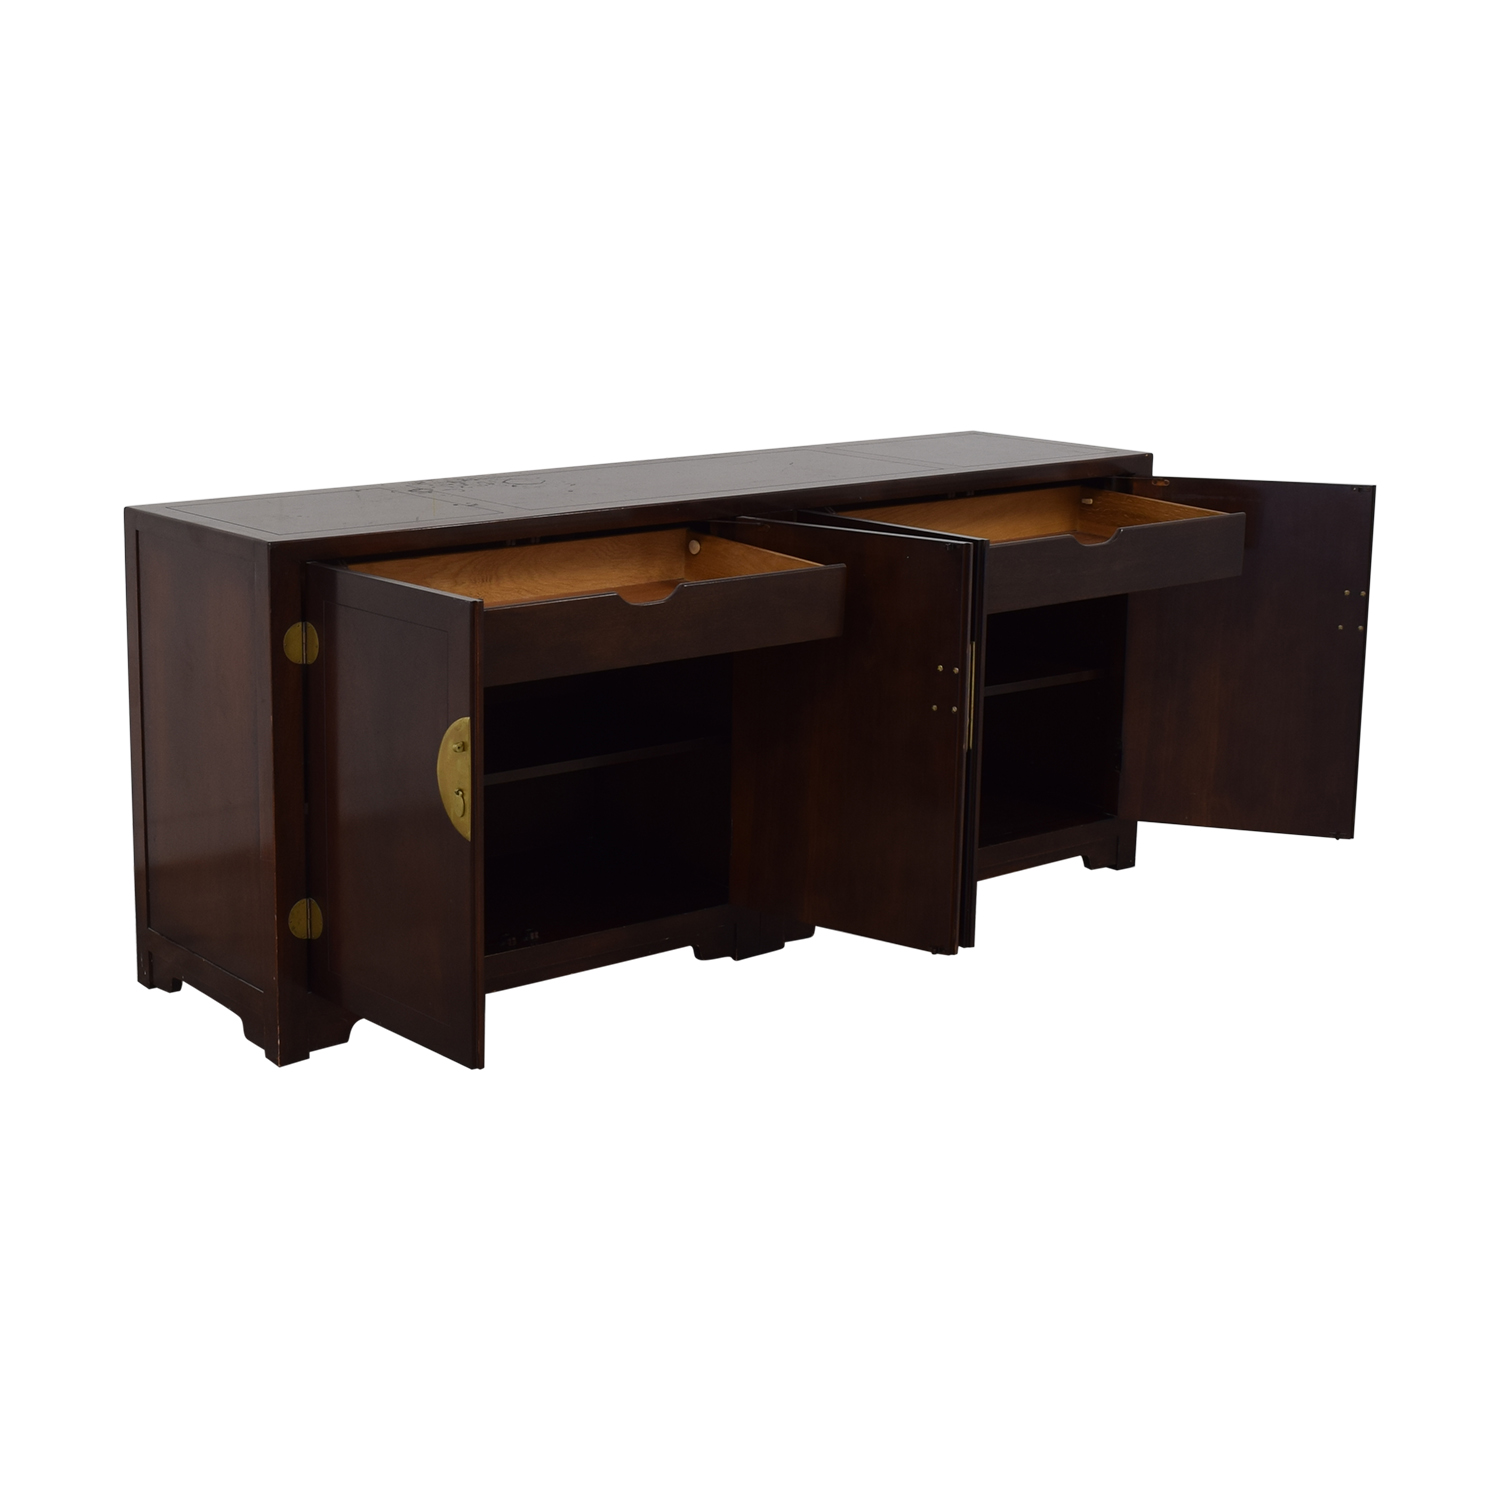 Baker Furniture Baker Furniture Far East Collection Double Chest Sideboard nj